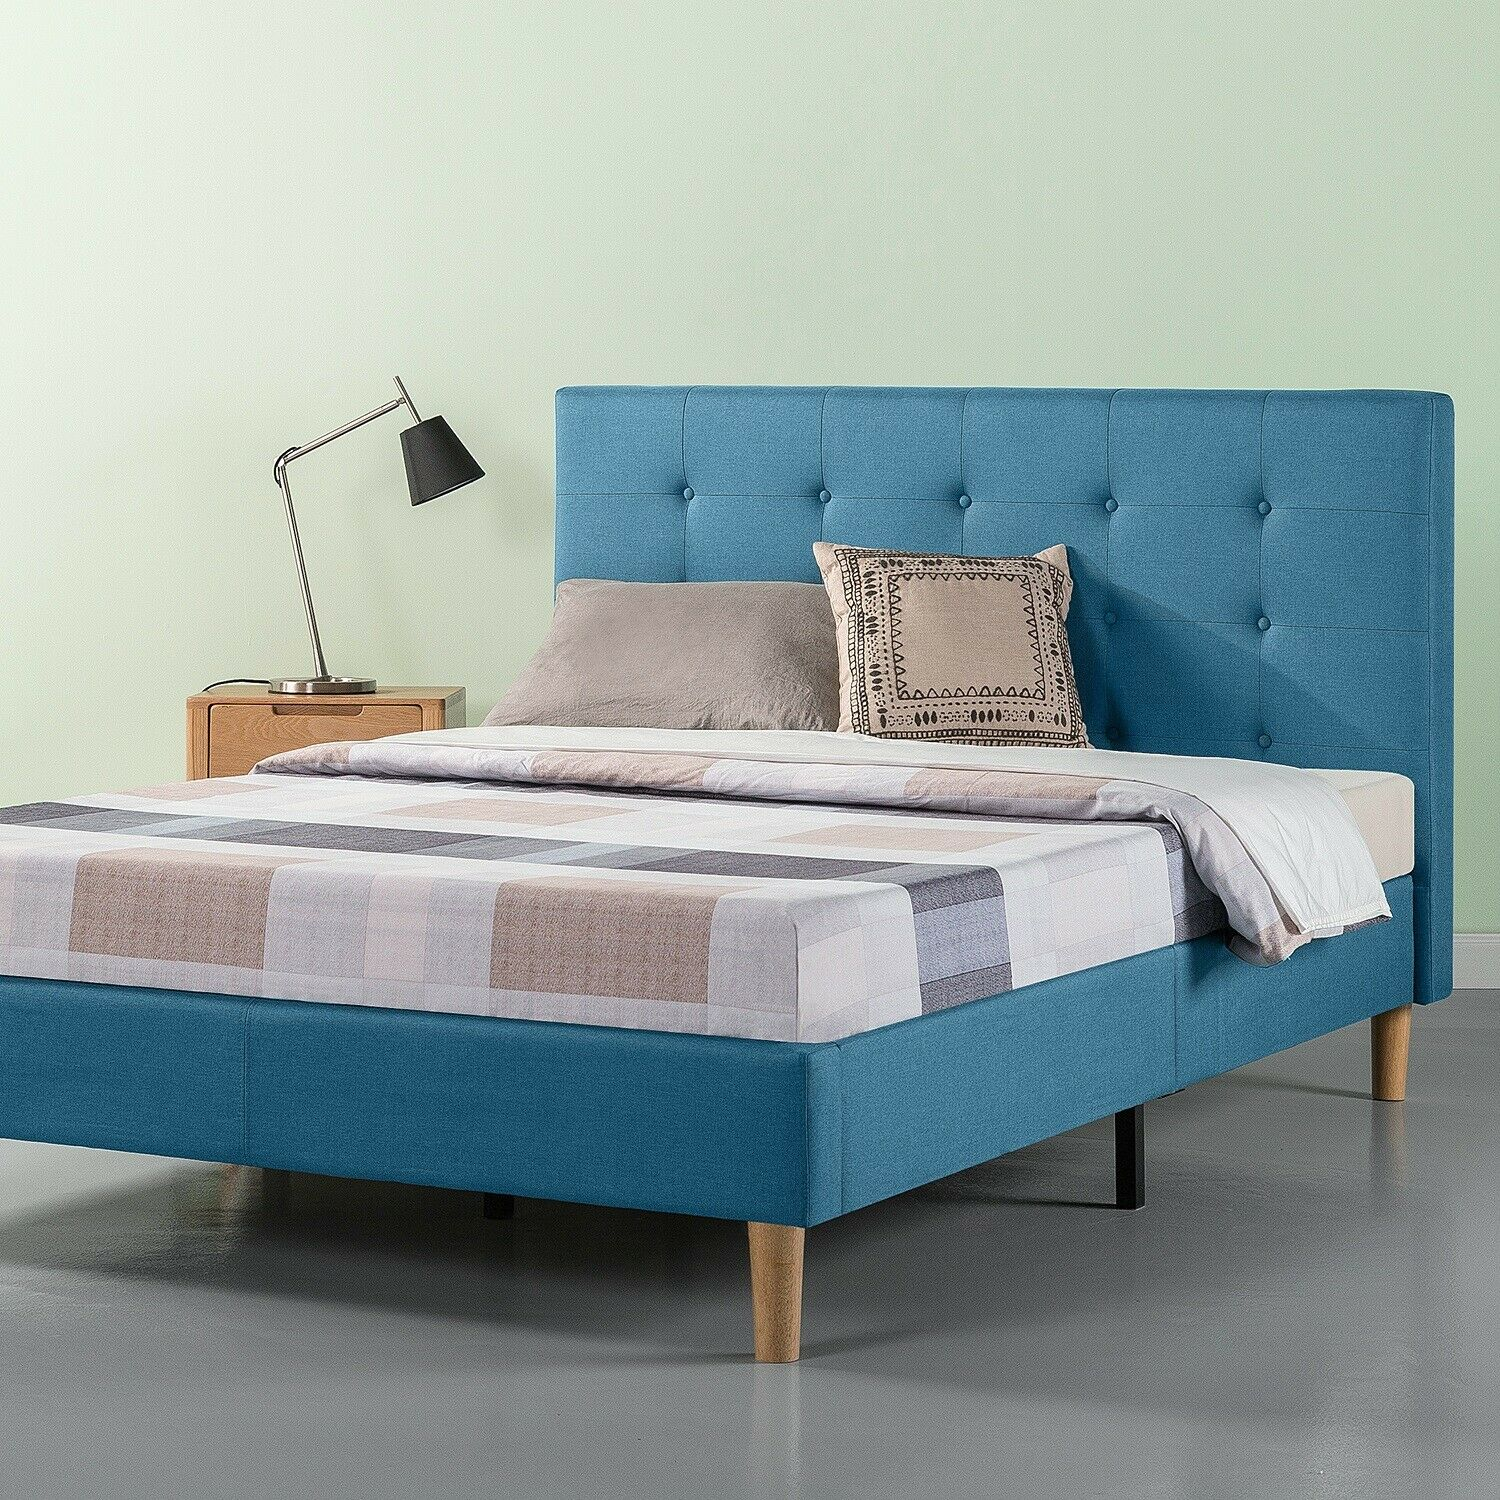 Zinus Upholstered Platform Bed Frame: King (Grey) $116 or Queen (Blue)